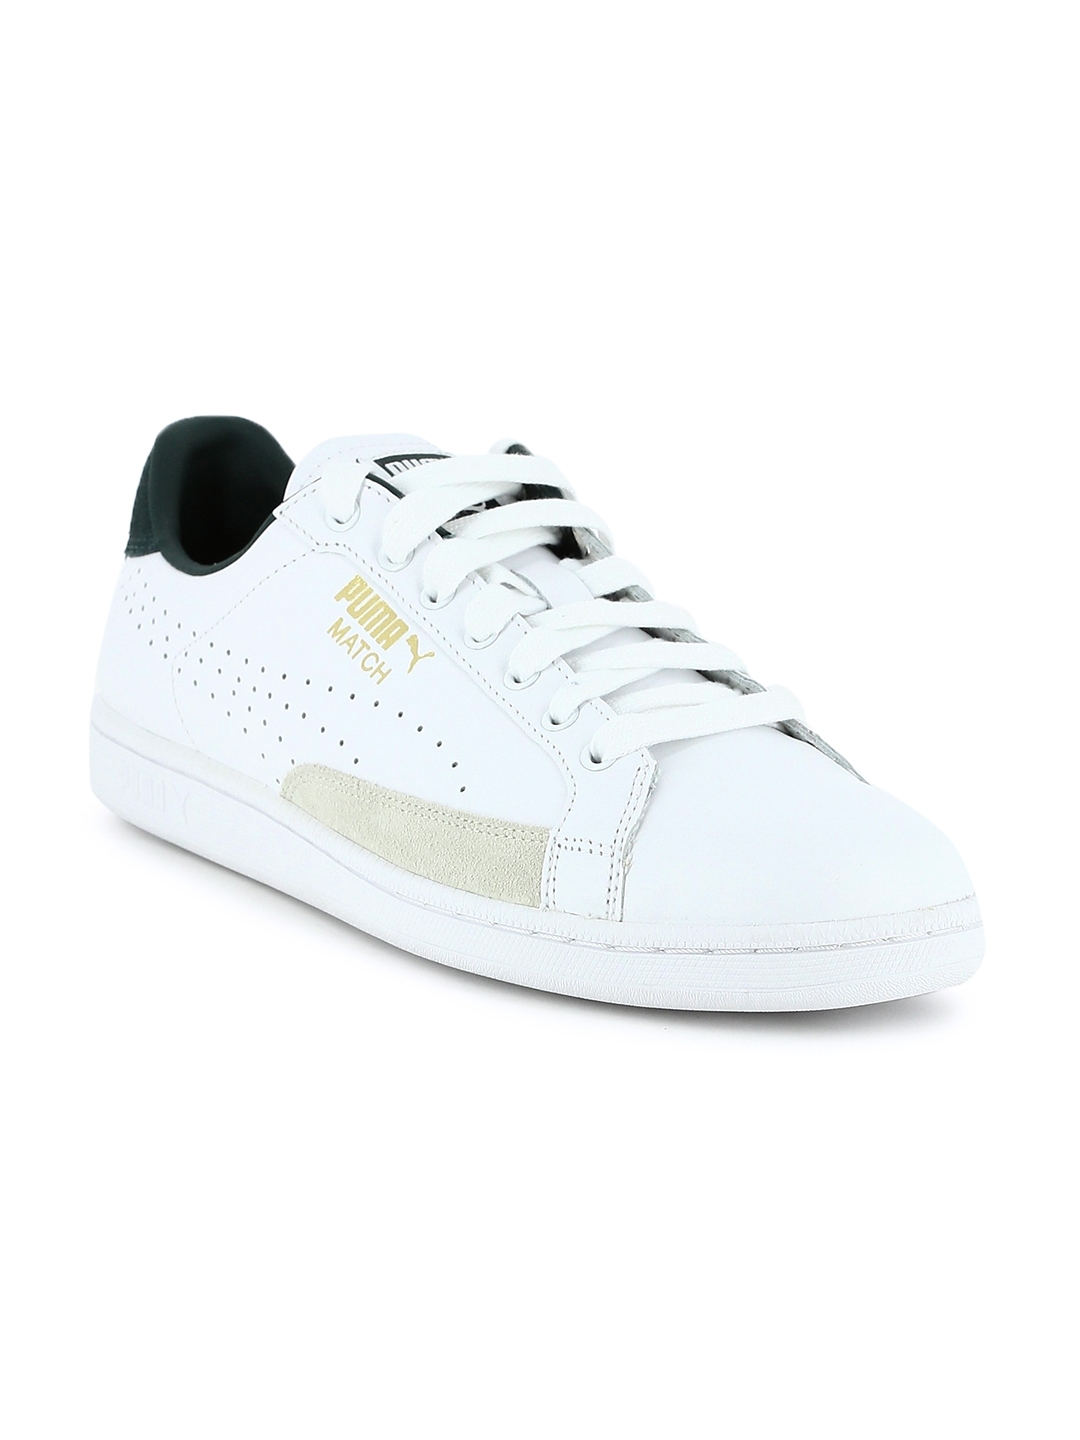 fac005c9ac8 Buy Puma Men White Match 74 UPC Sneakers - Casual Shoes for Men ...